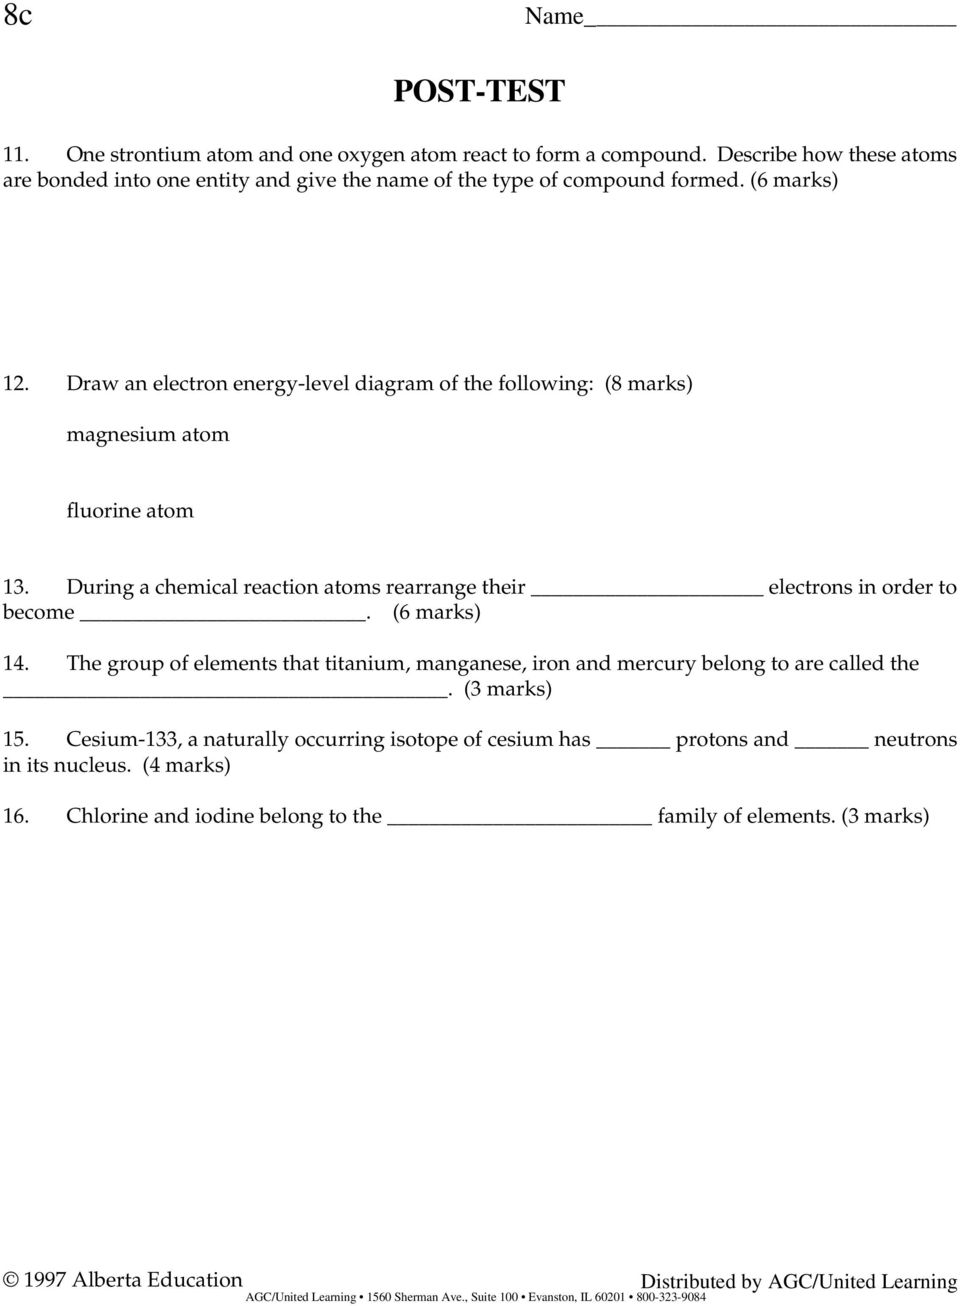 Name Pre Test Directions Circle The Letter Indicating Whether Oxygen Atom Model Atomic Diagram Draw An Electron Energylevel Of Following 8 Marks Magnesium Fluorine